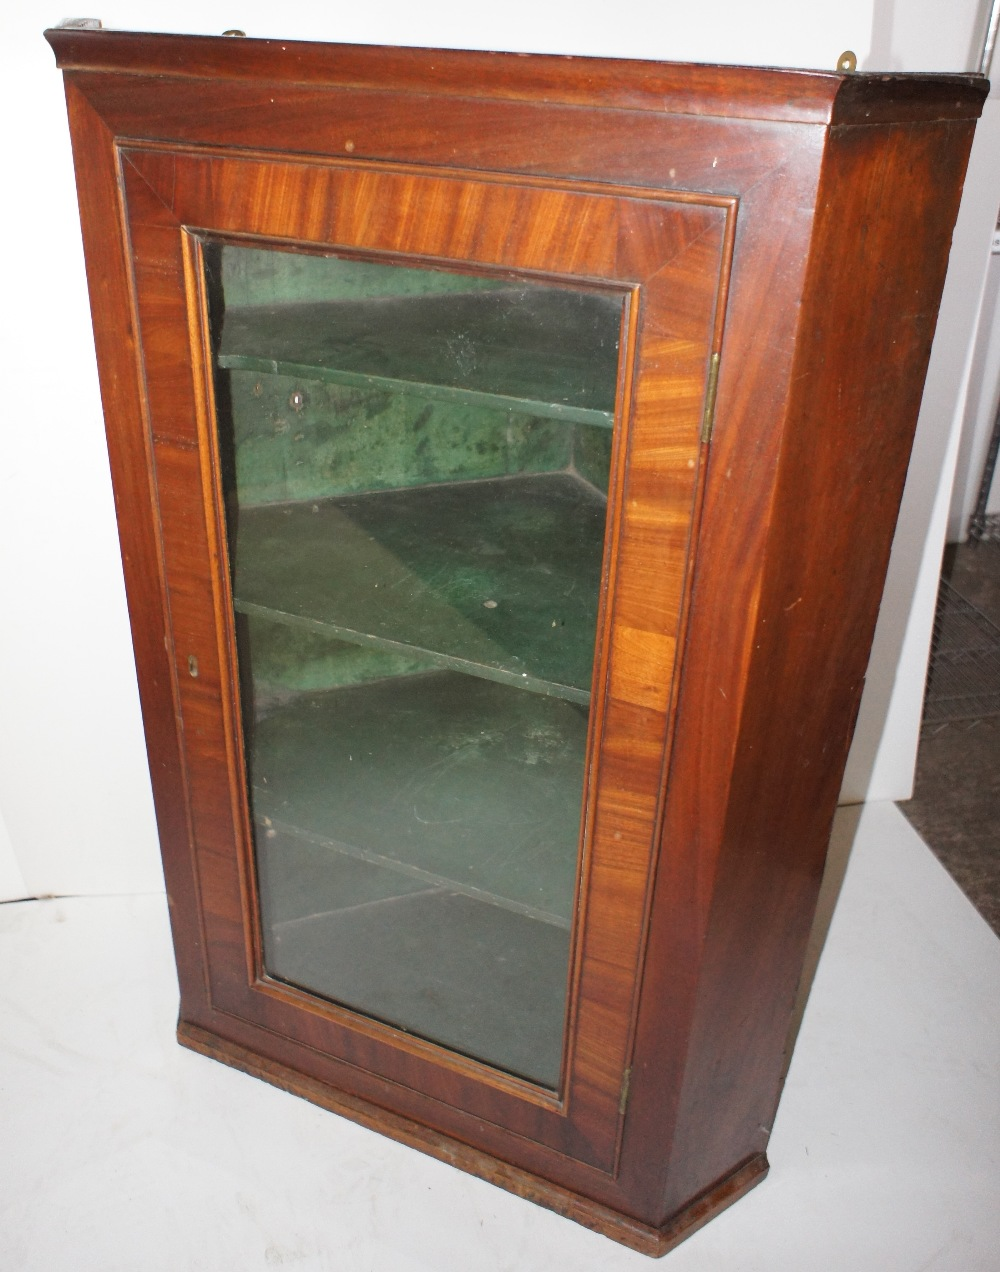 Lot 650 - NV- A mahogany wall hanging corner cabinet with a glass door enclosing a painted shelves